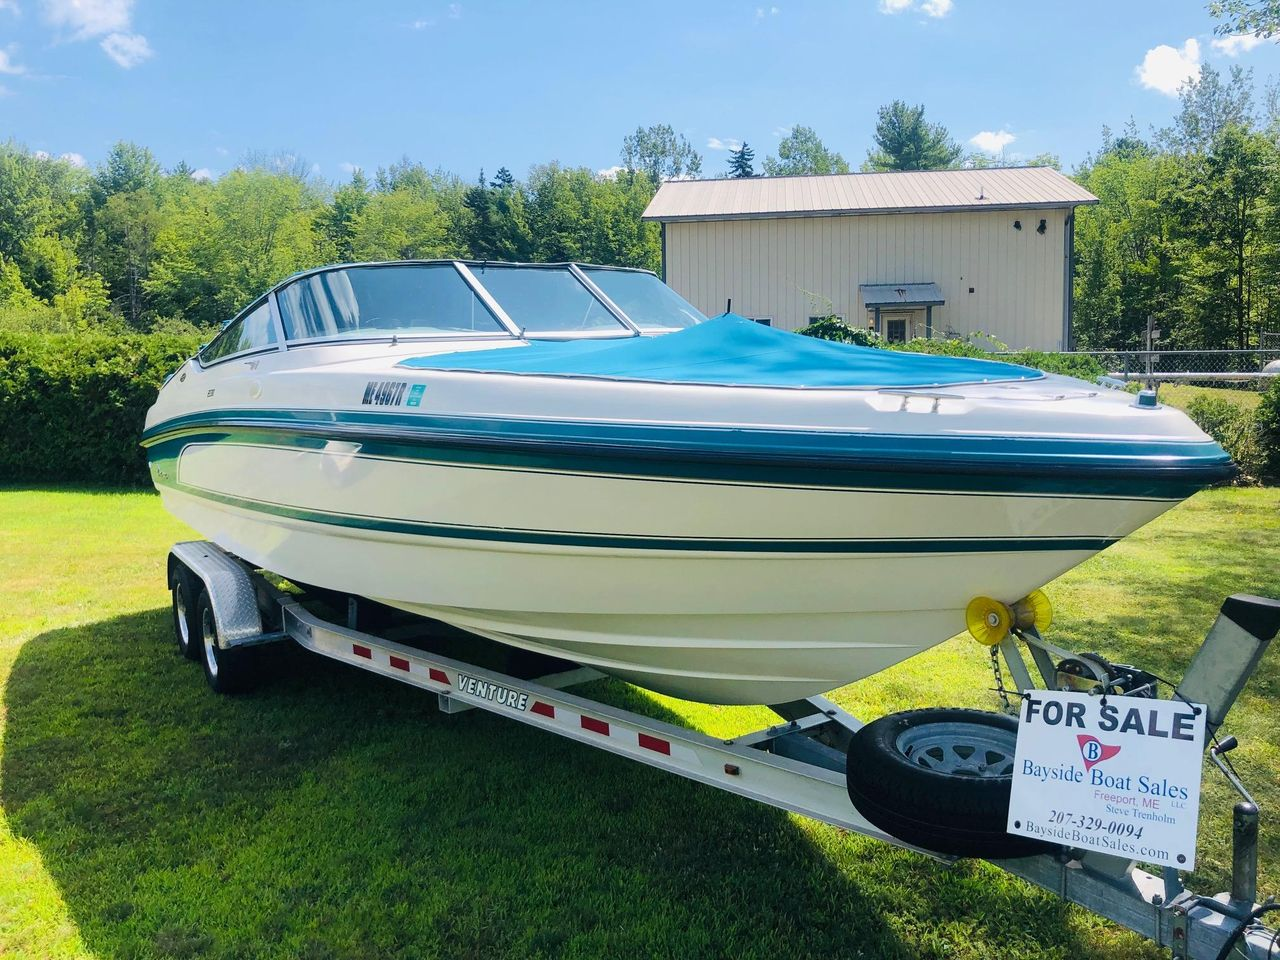 1995 Used Chaparral 2330 Bowrider Boat For Sale - $15,900